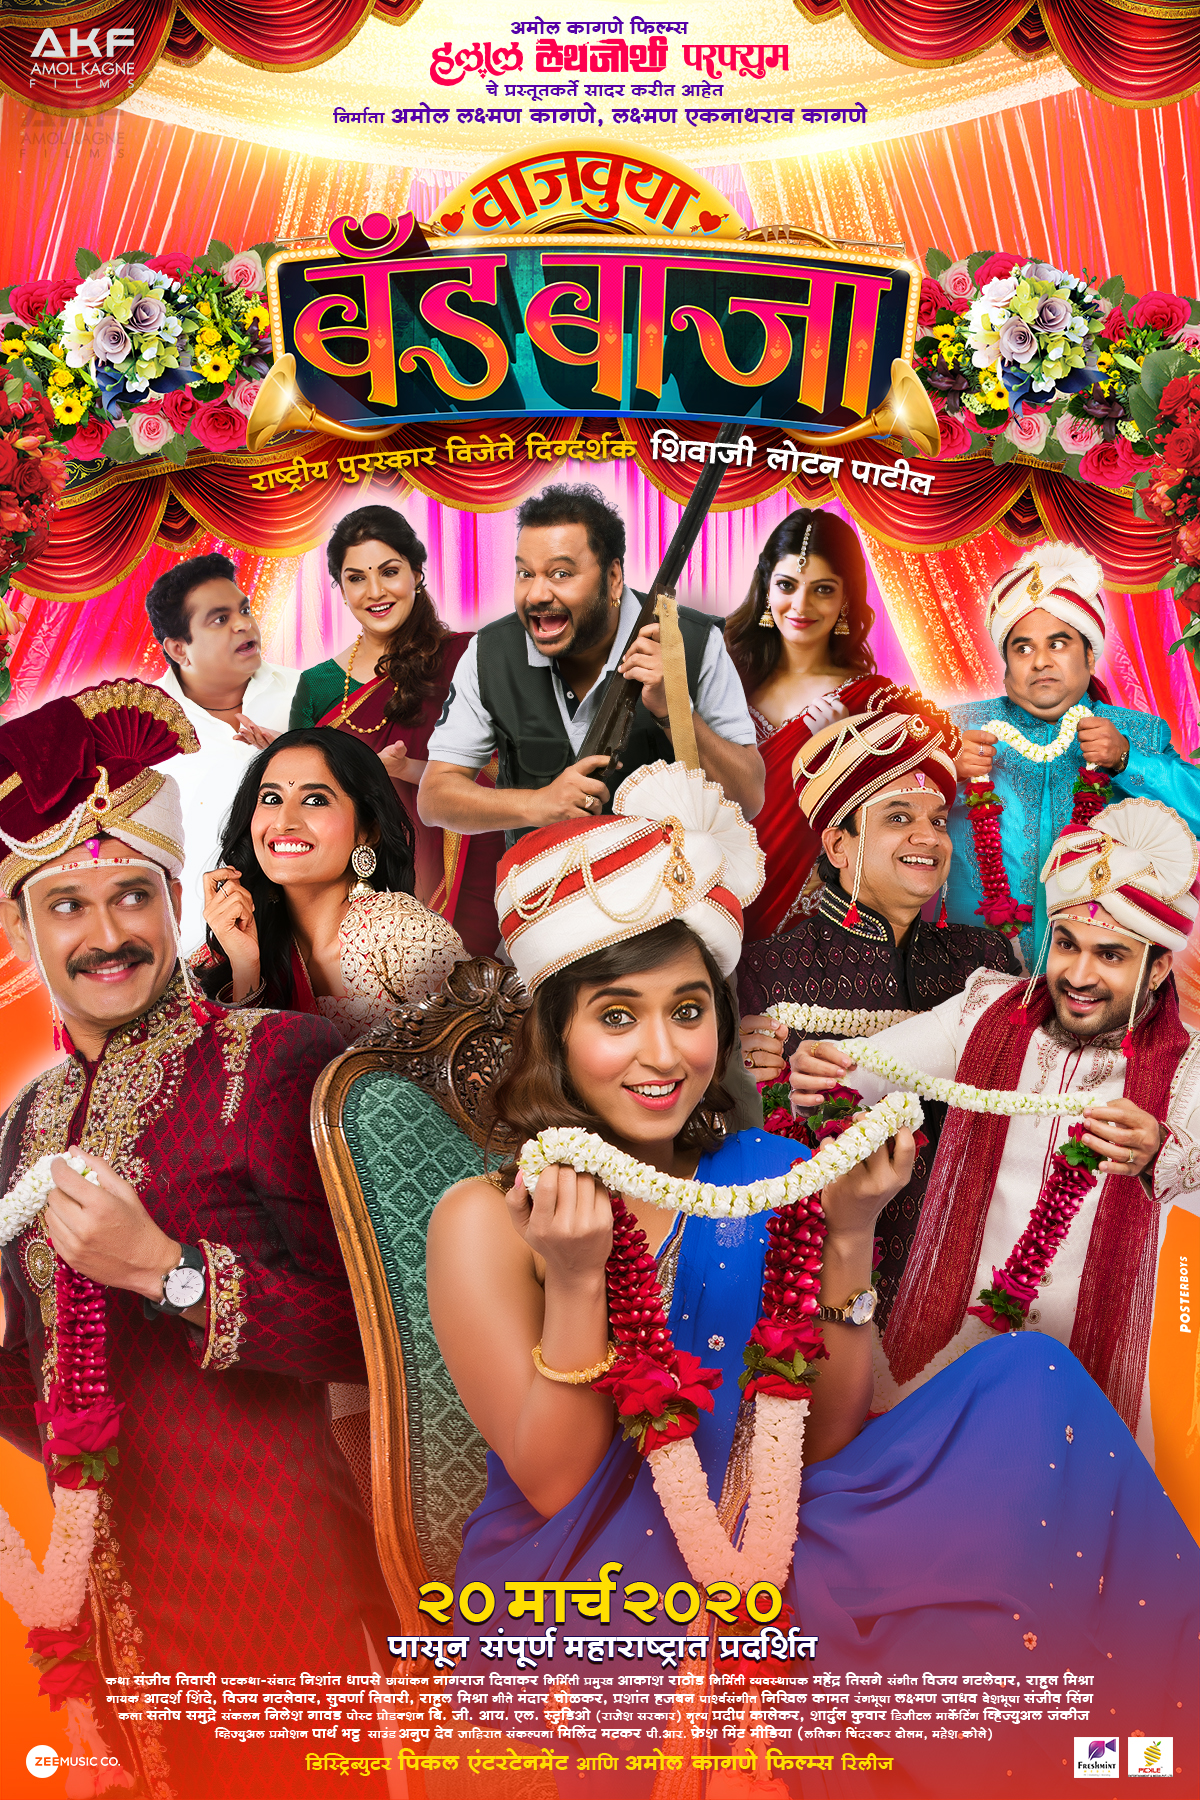 Vajvuya Band Baja 2020 Marathi 480p HDRip ESubs 350MB x264 AAC